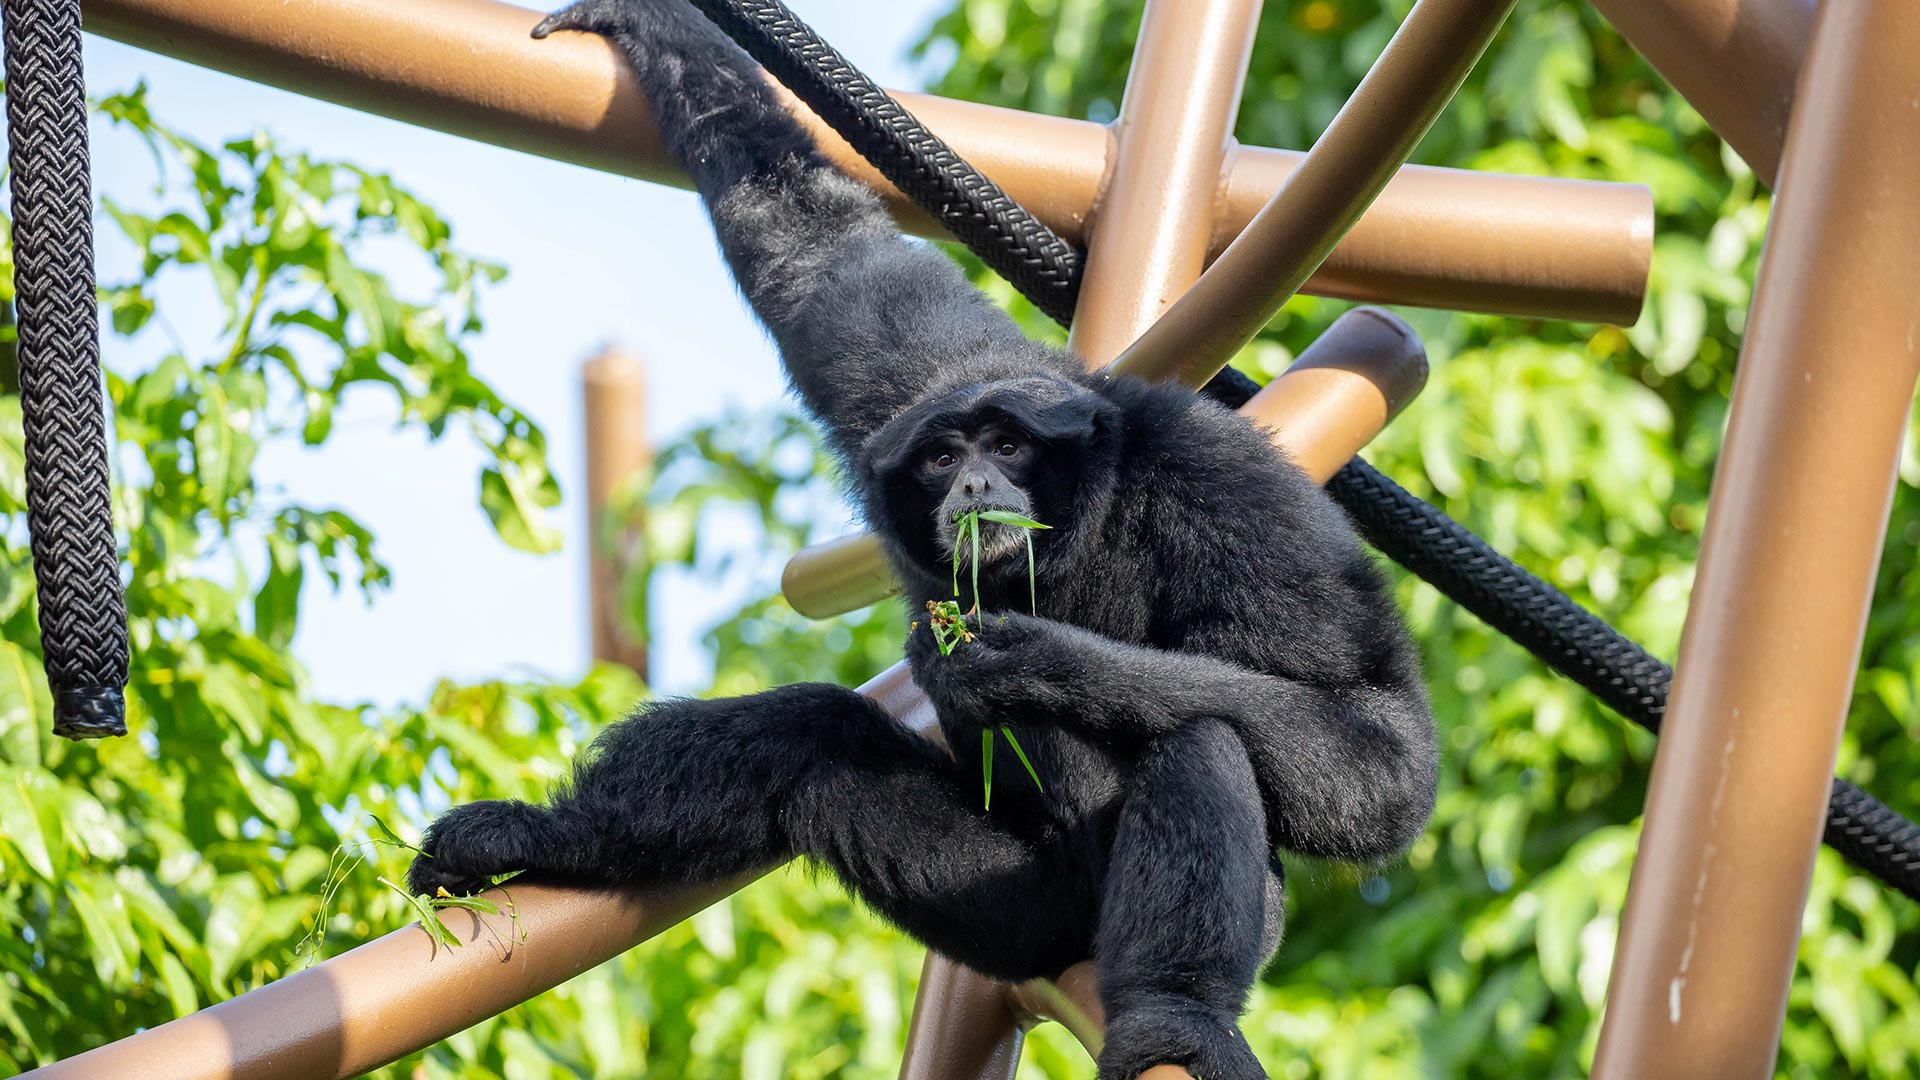 https://rfacdn.nz/zoo/assets/media/siamang-sitting-and-eating-grass-gallery.jpg